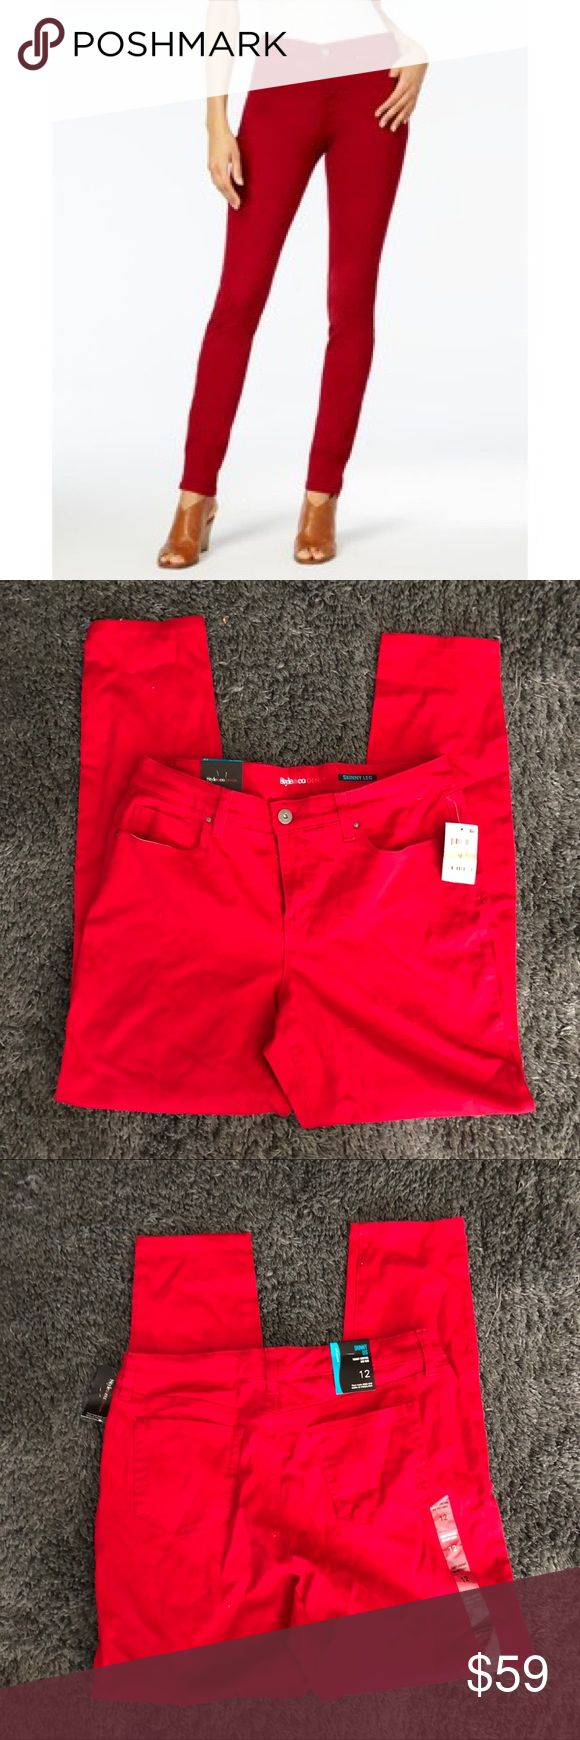 Red skinny jeans Brand: style and co via Macy's 🚫modeling  🚫trades (askers will be ignored) or lowballing  ✅ will consider offers made through BLUE offer button.  LB ✅ great bundle discount Pants Skinny